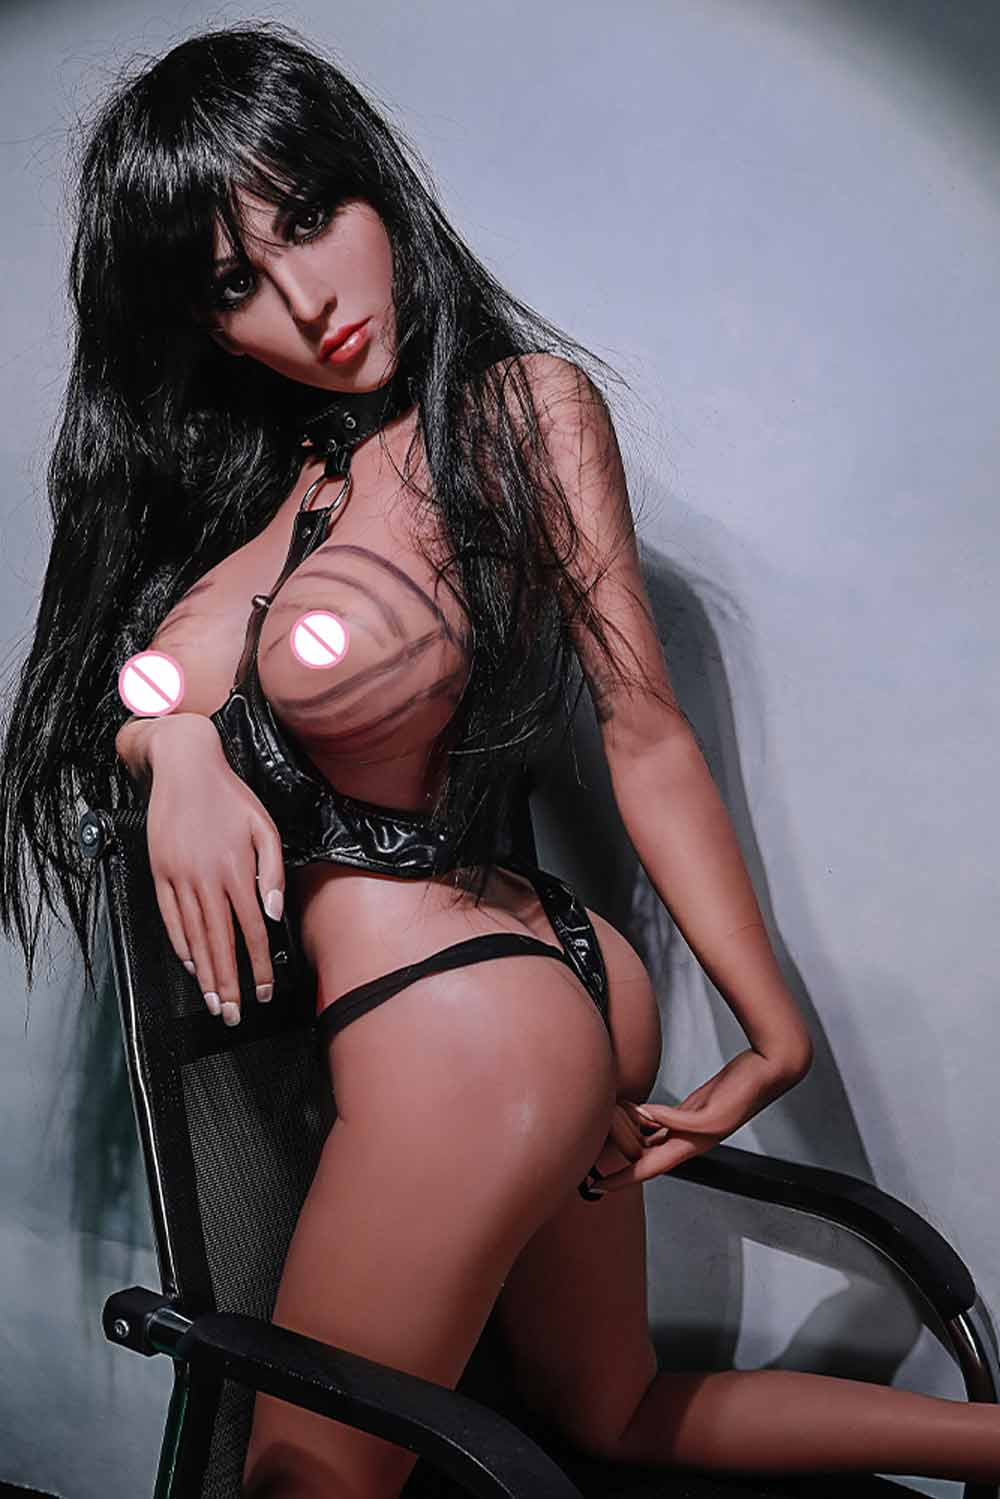 Sex doll with hands beside anus